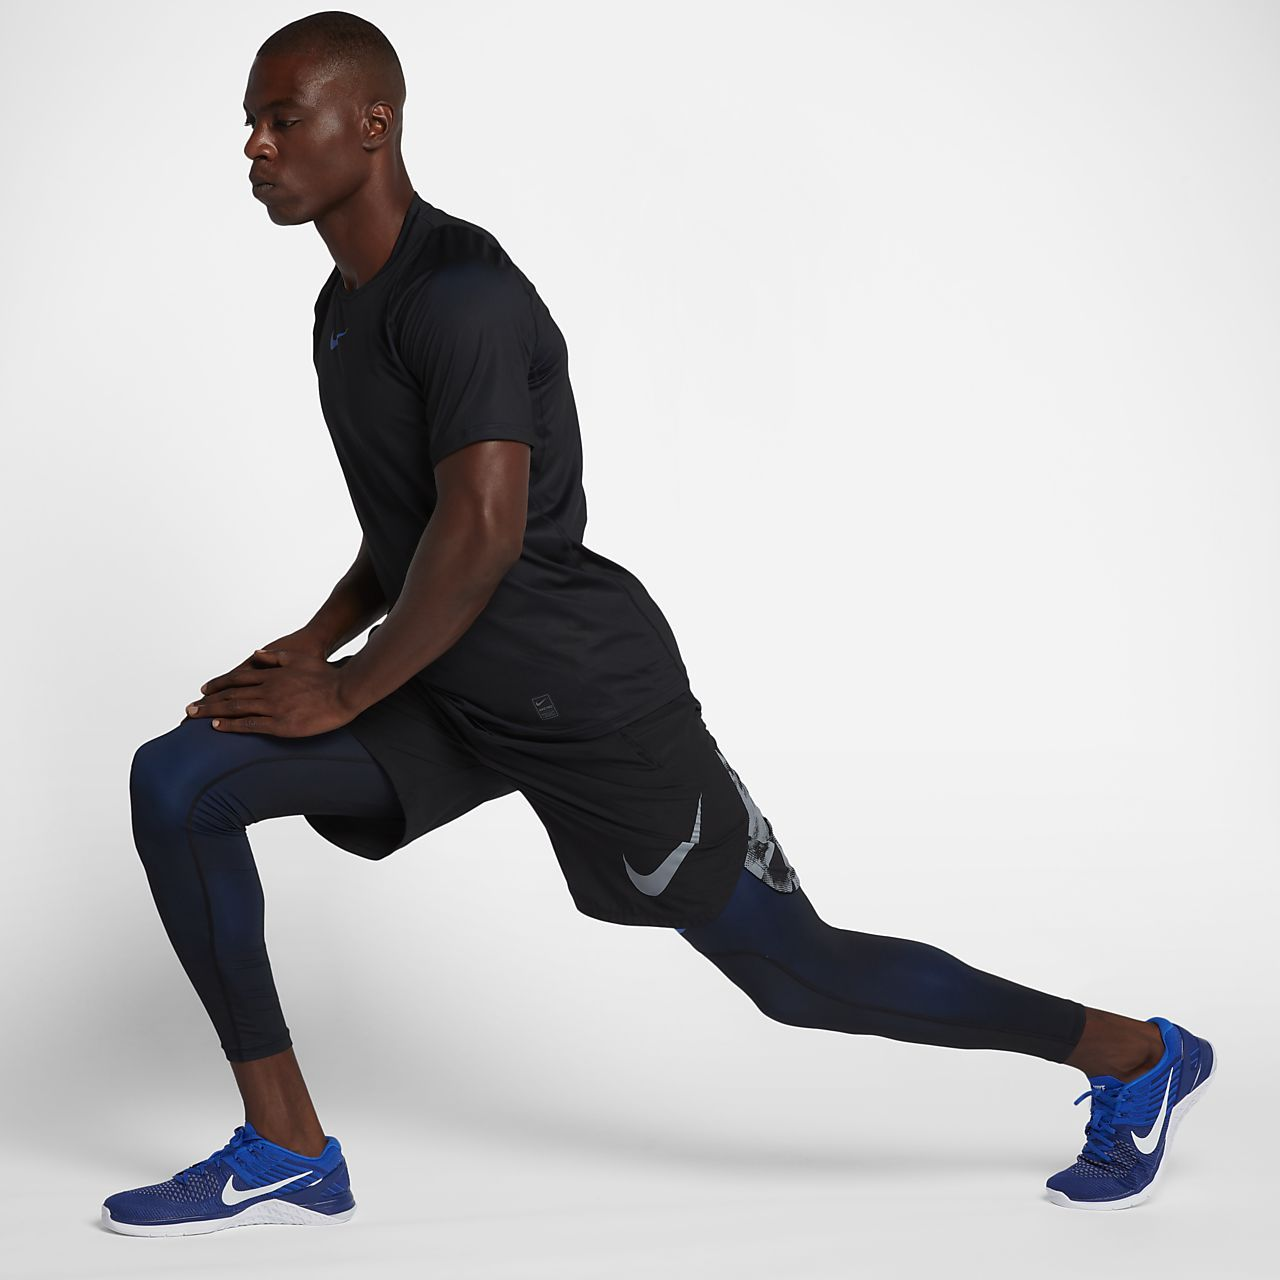 f228fee4b6 Nike Pro Colorburst Men's Training Tights | the training method ...